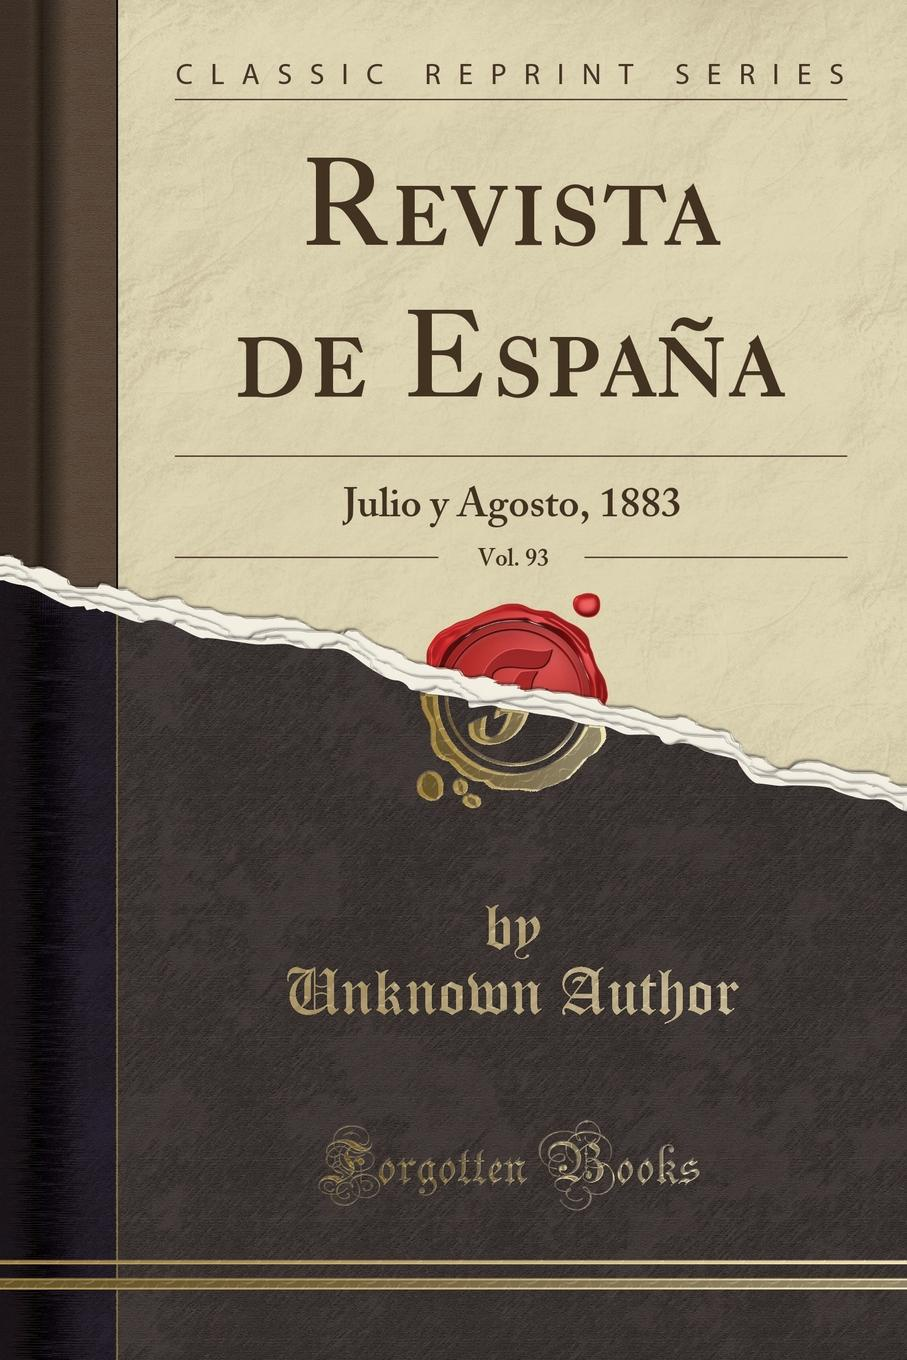 Unknown Author Revista de Espana, Vol. 93. Julio y Agosto, 1883 (Classic Reprint) дефлектор капота sim skicee1212 для kia ceed 2012 2015